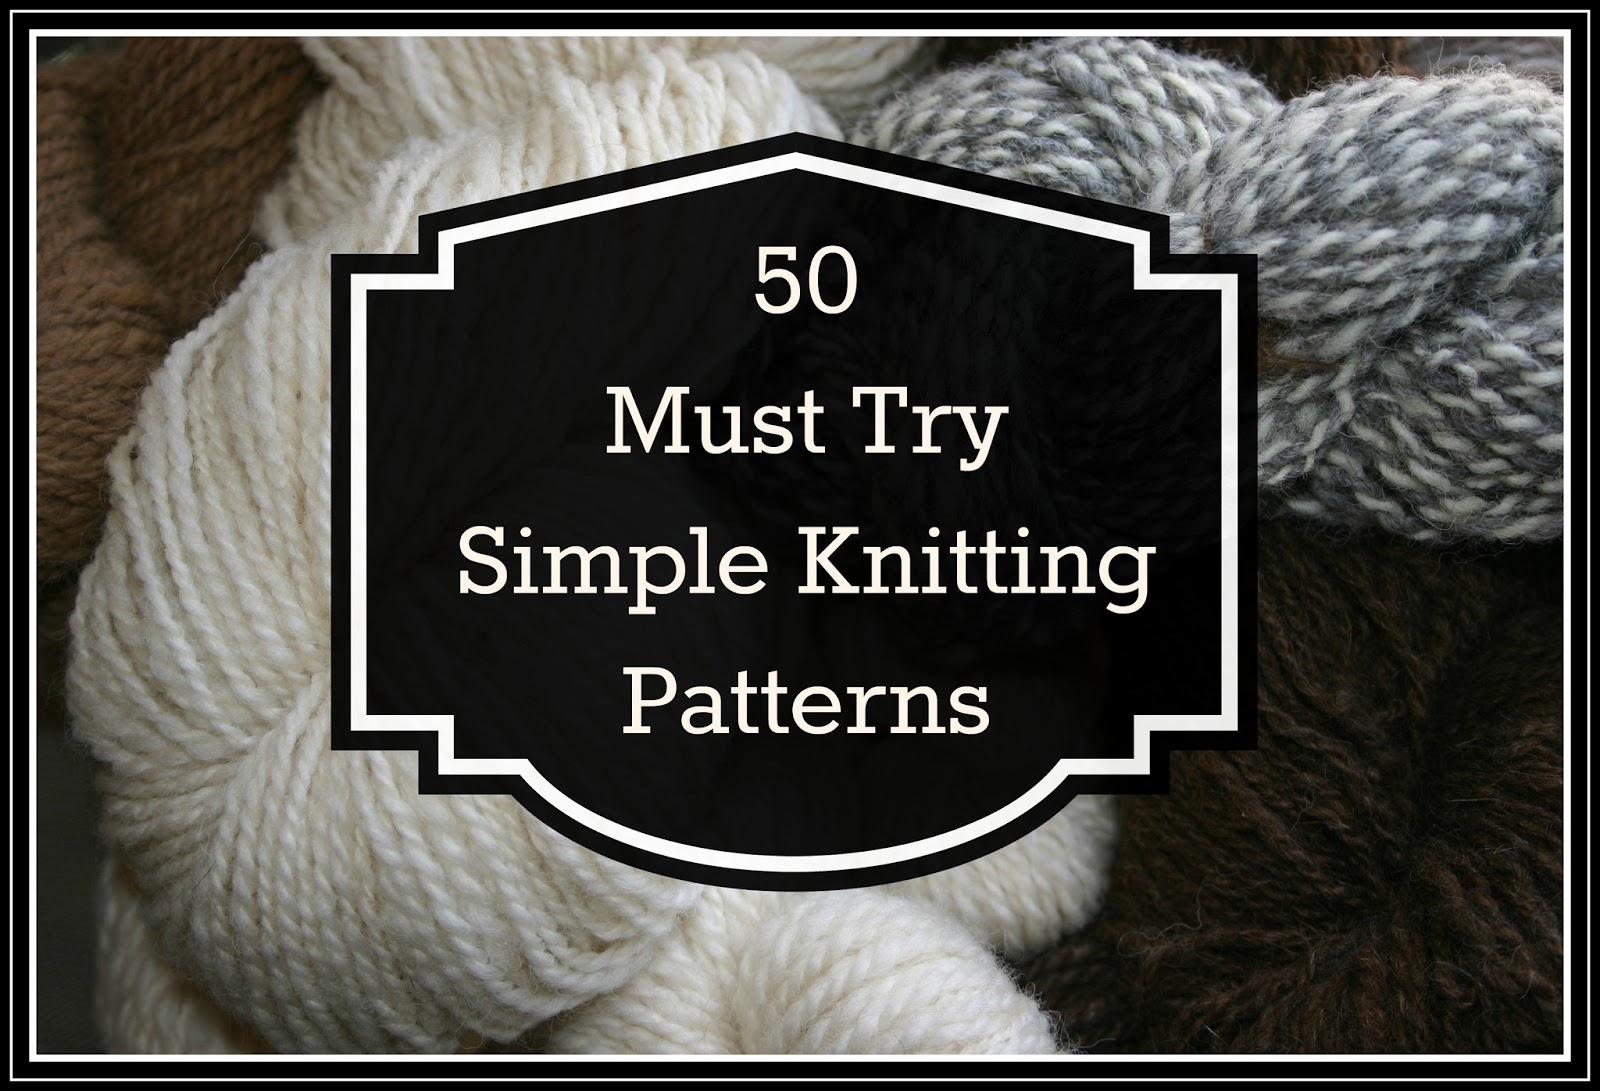 Easy Knitting Ideas Free : Must try simple knitting patterns the knit wit by shair